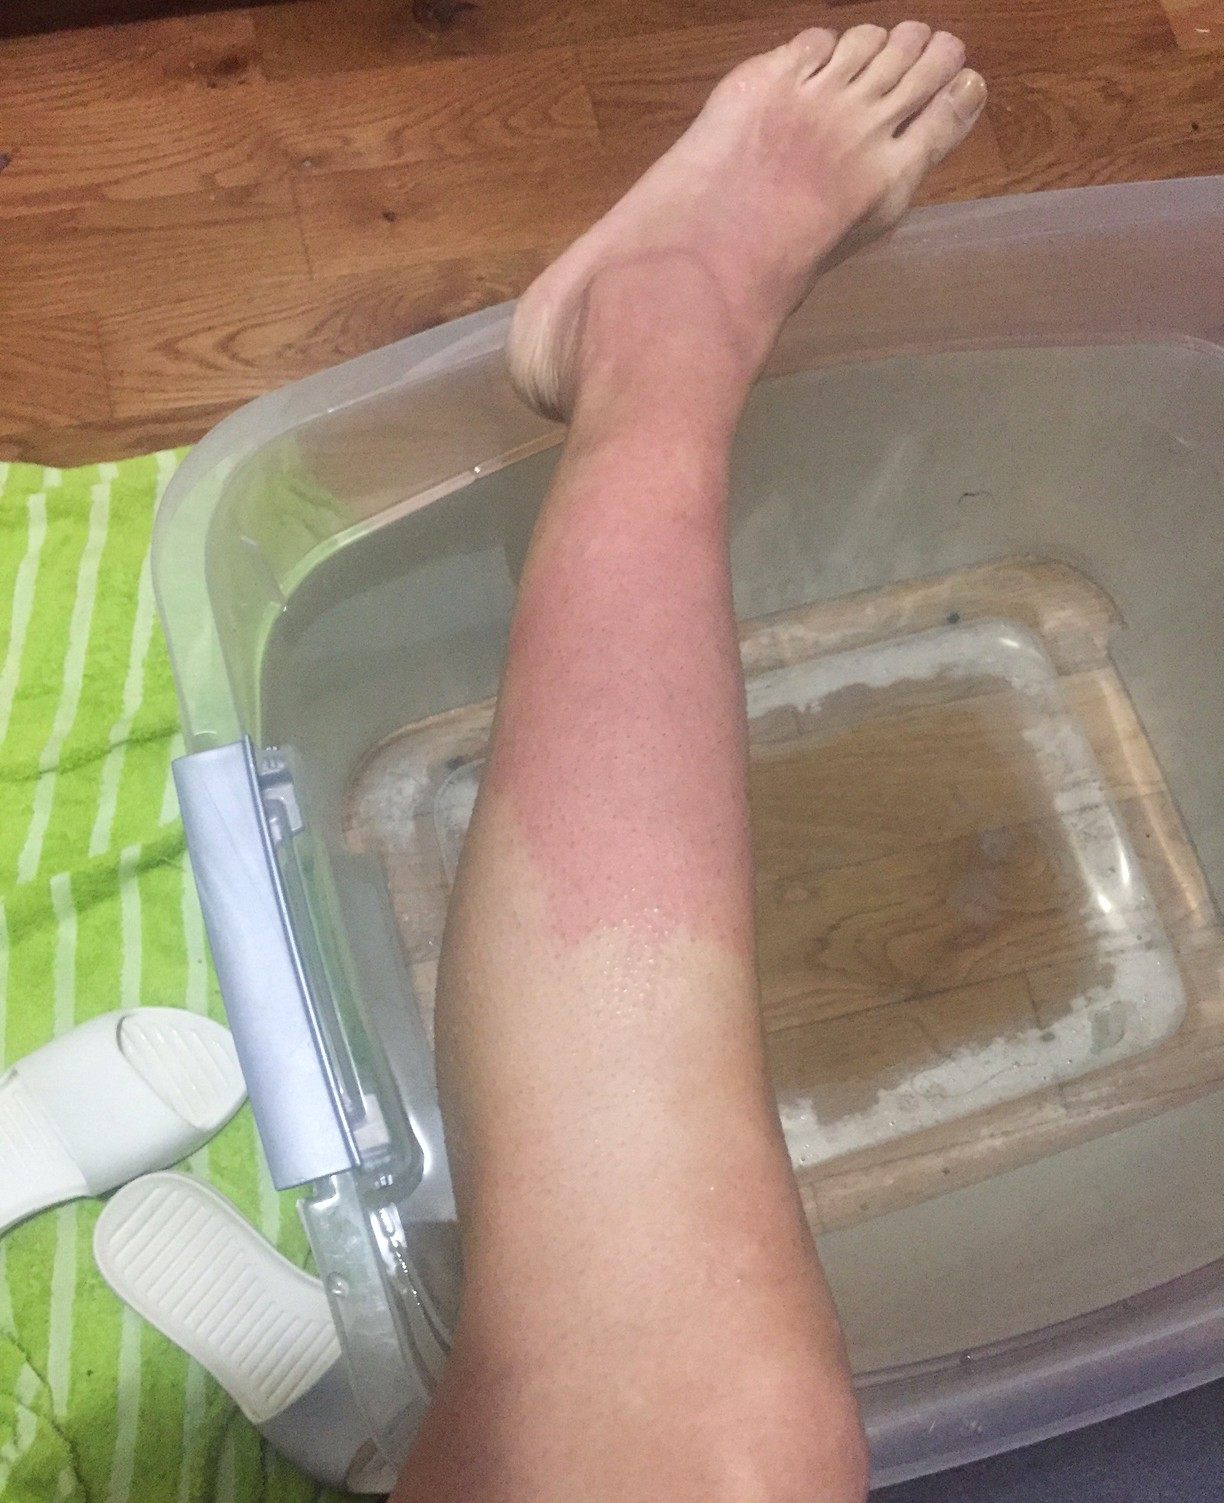 On how to treat a burn with boiling water